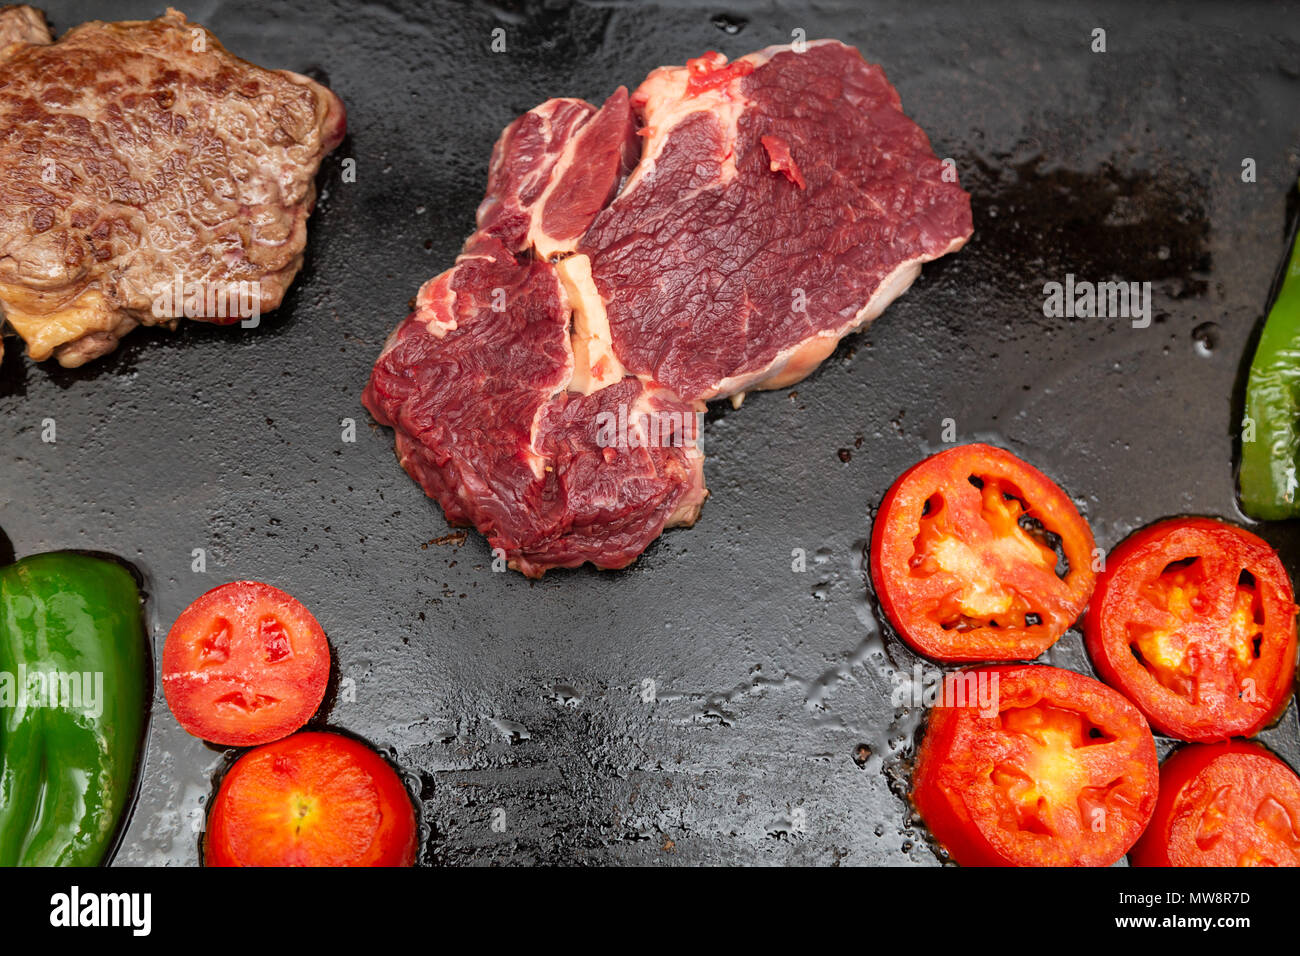 Rib eye steak (Spanish: Bife ancho) raw and grilled, tomatoes and green peppers on a cast iron rectangle griddle plate, flat lay - Stock Image